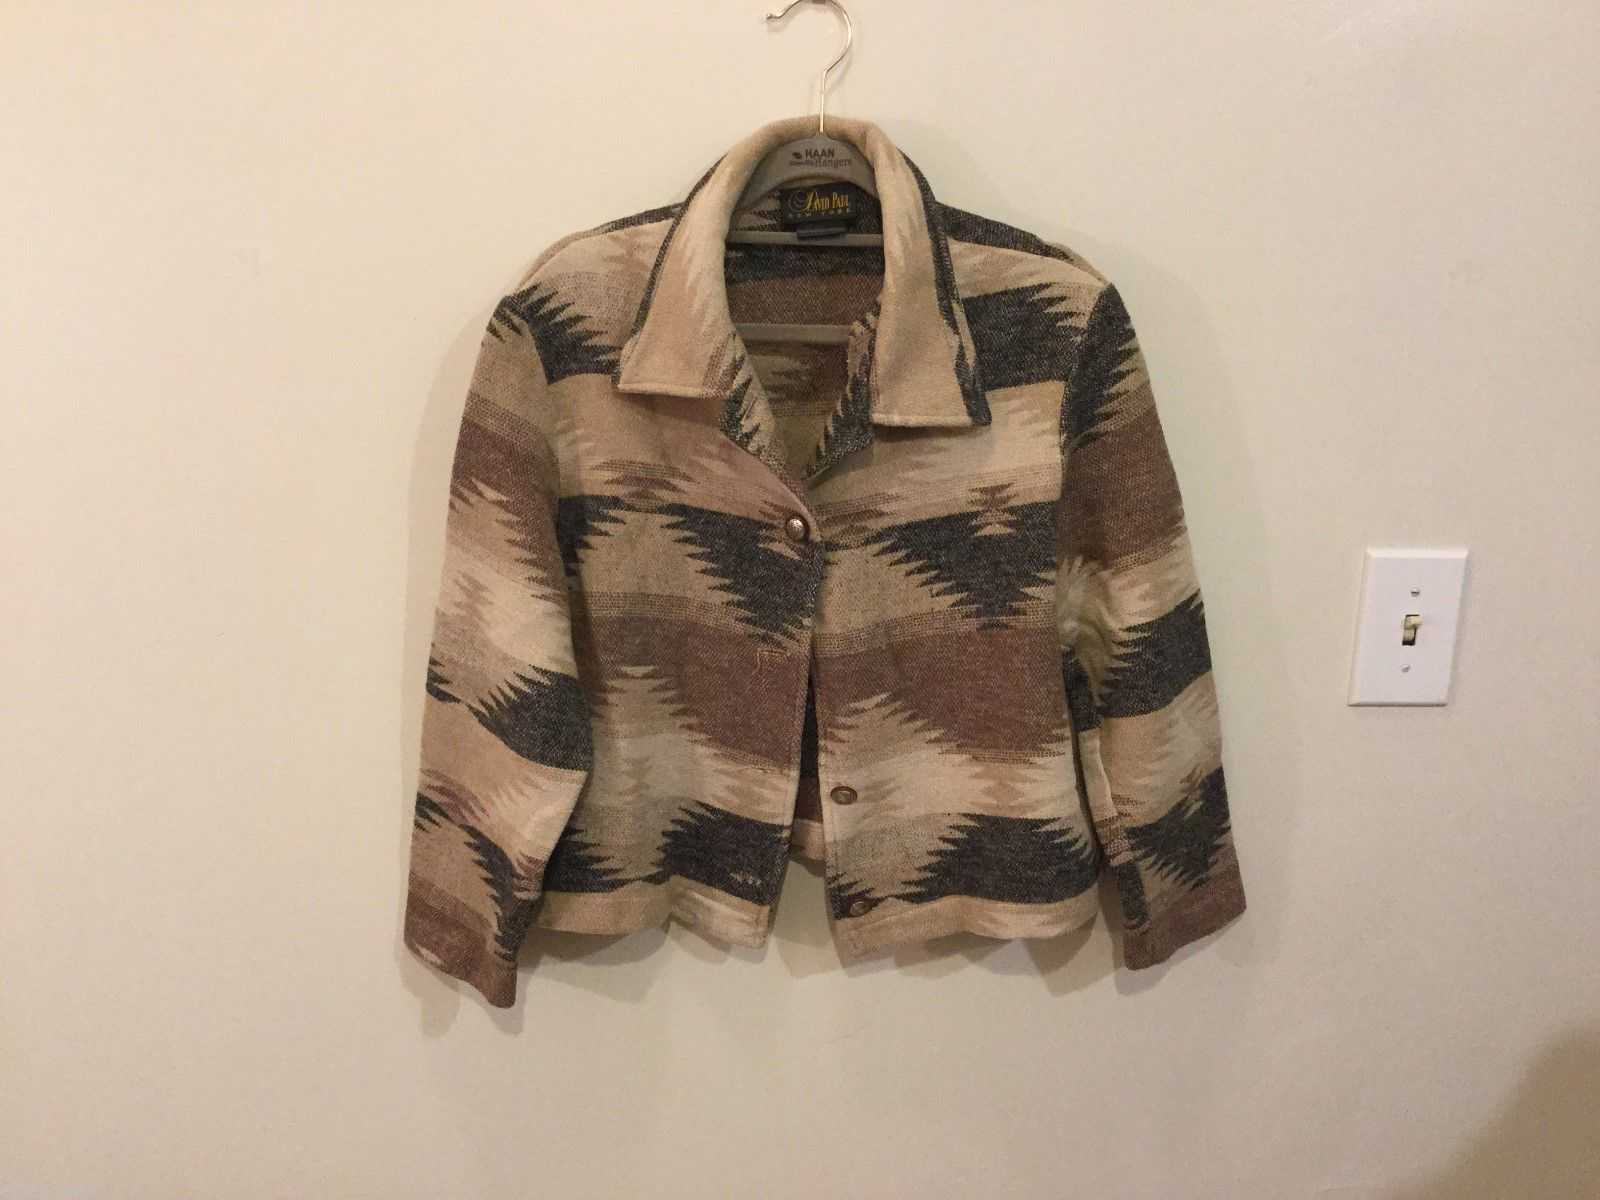 David Paul Womans Cropped Patterned Jacket, Size Medium